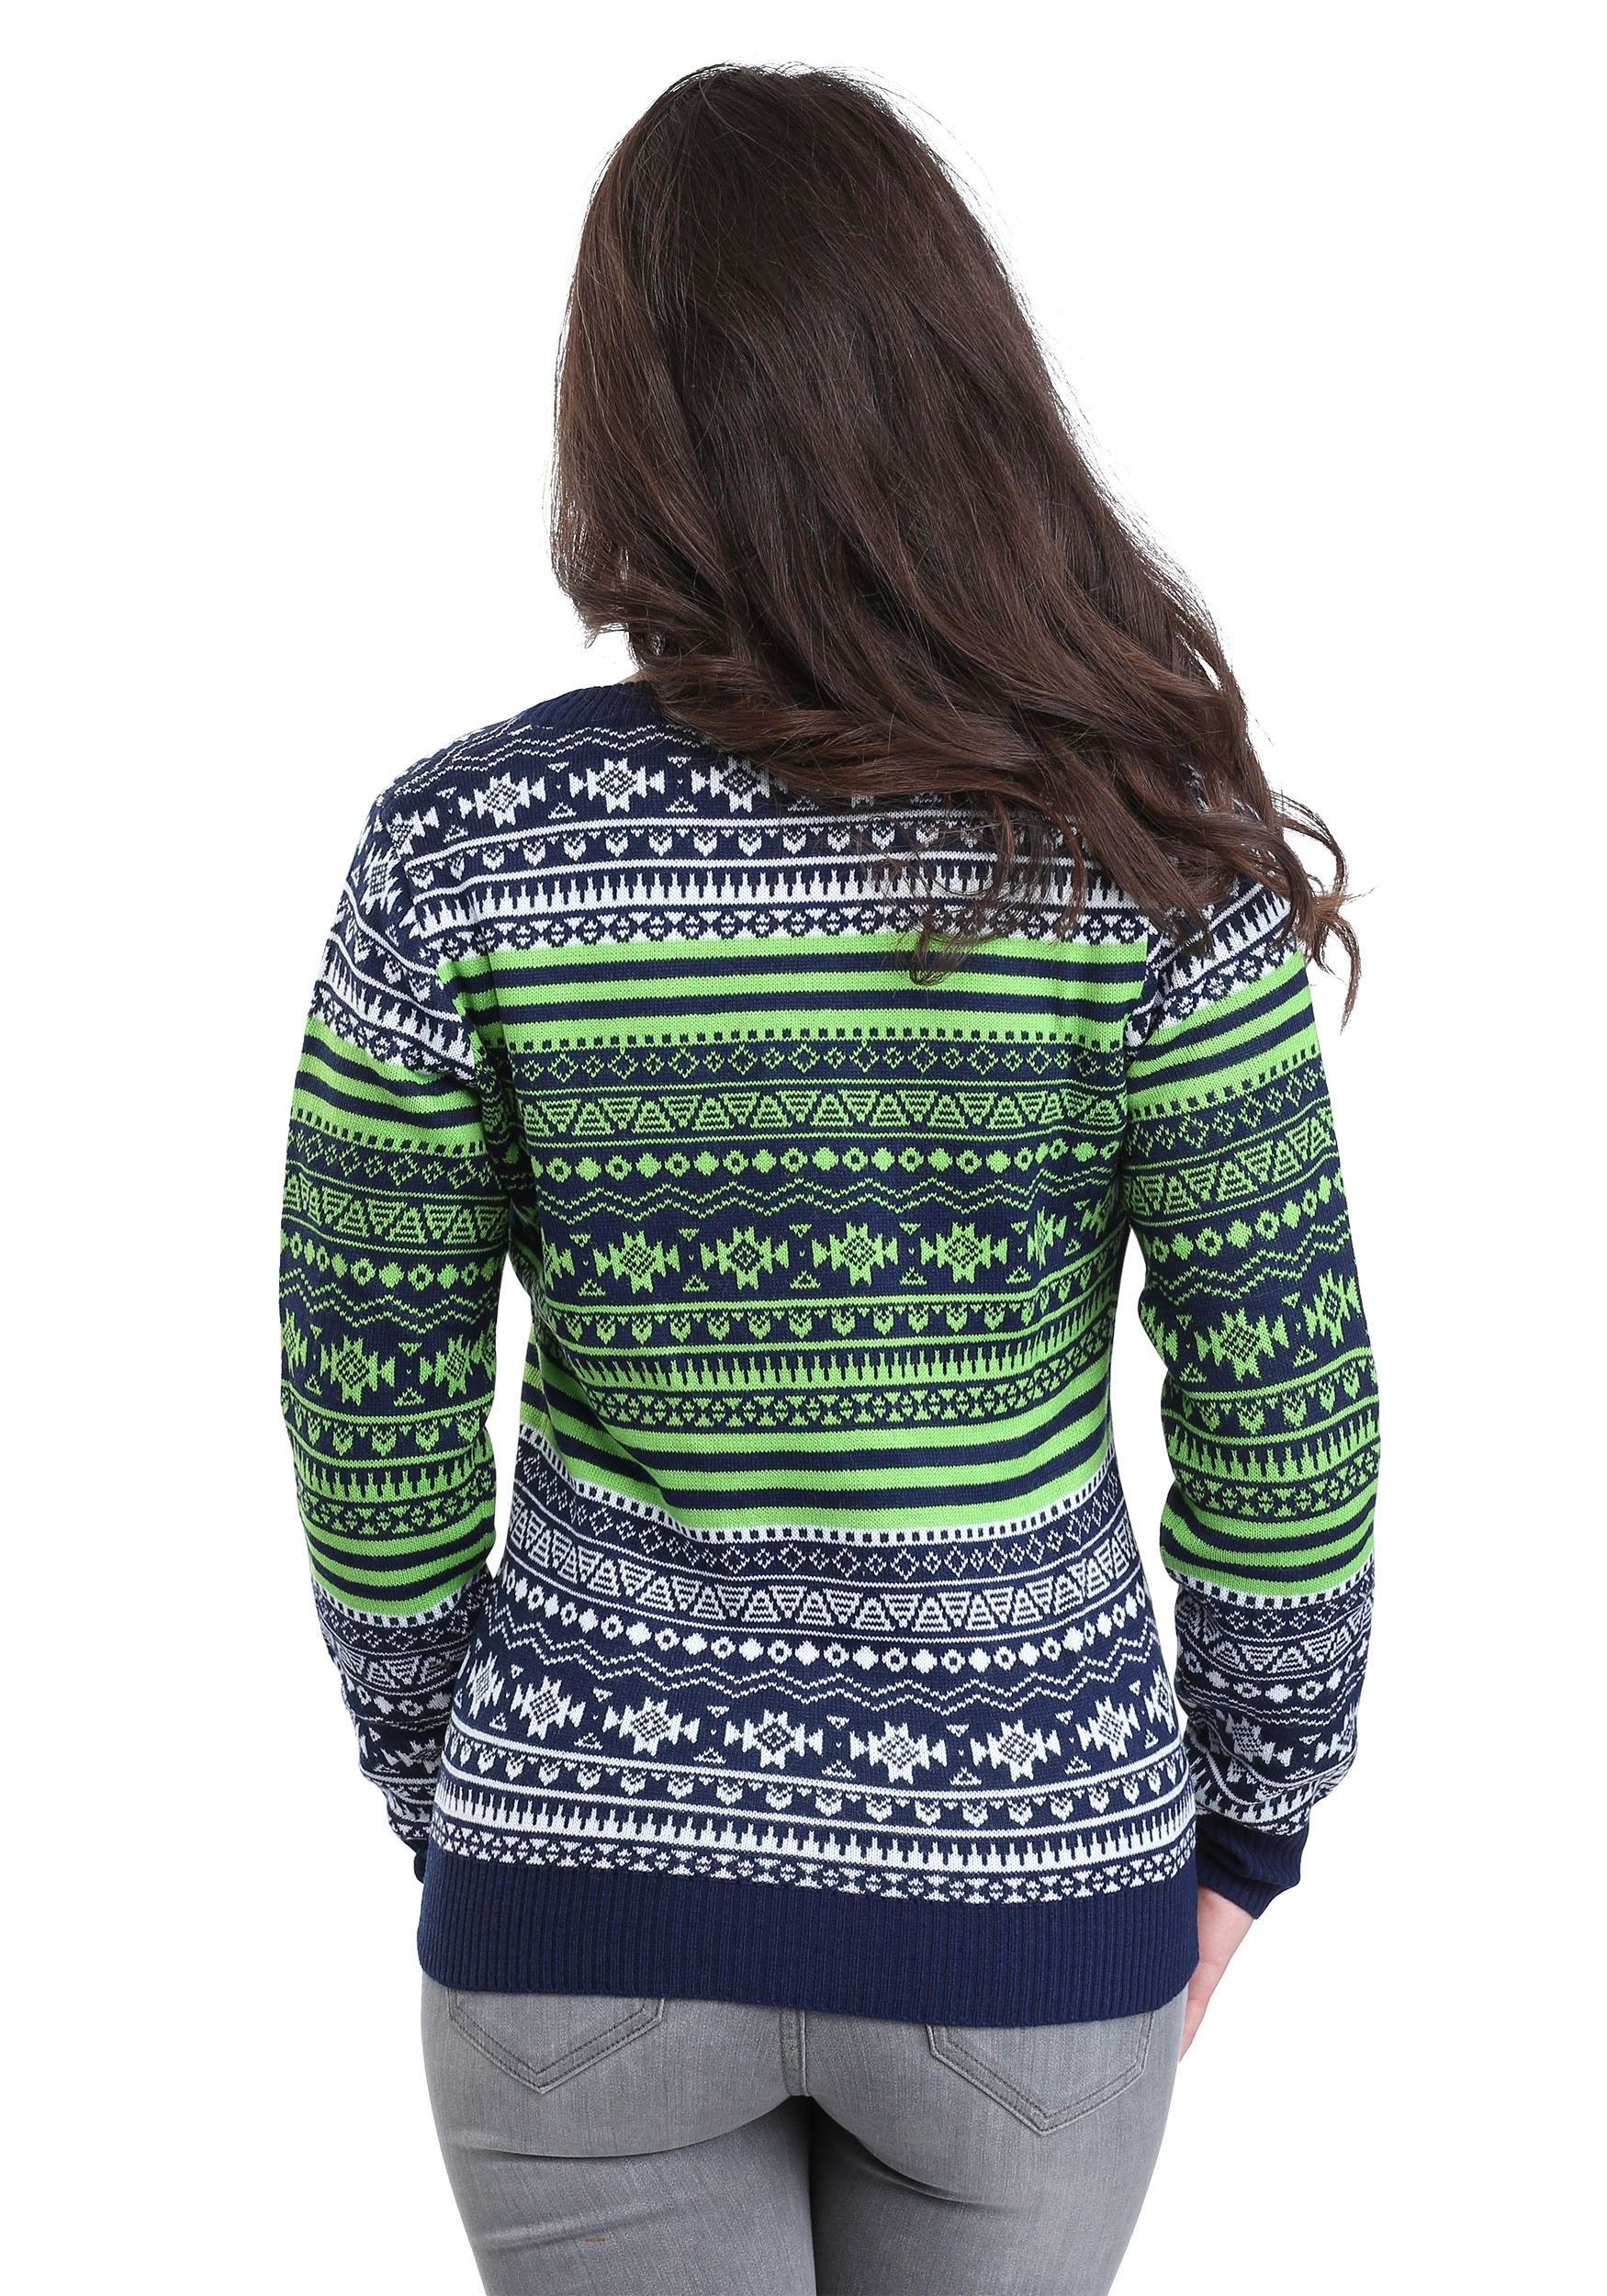 seattle seahawks big logo aztec sweater - Seahawks Christmas Sweater